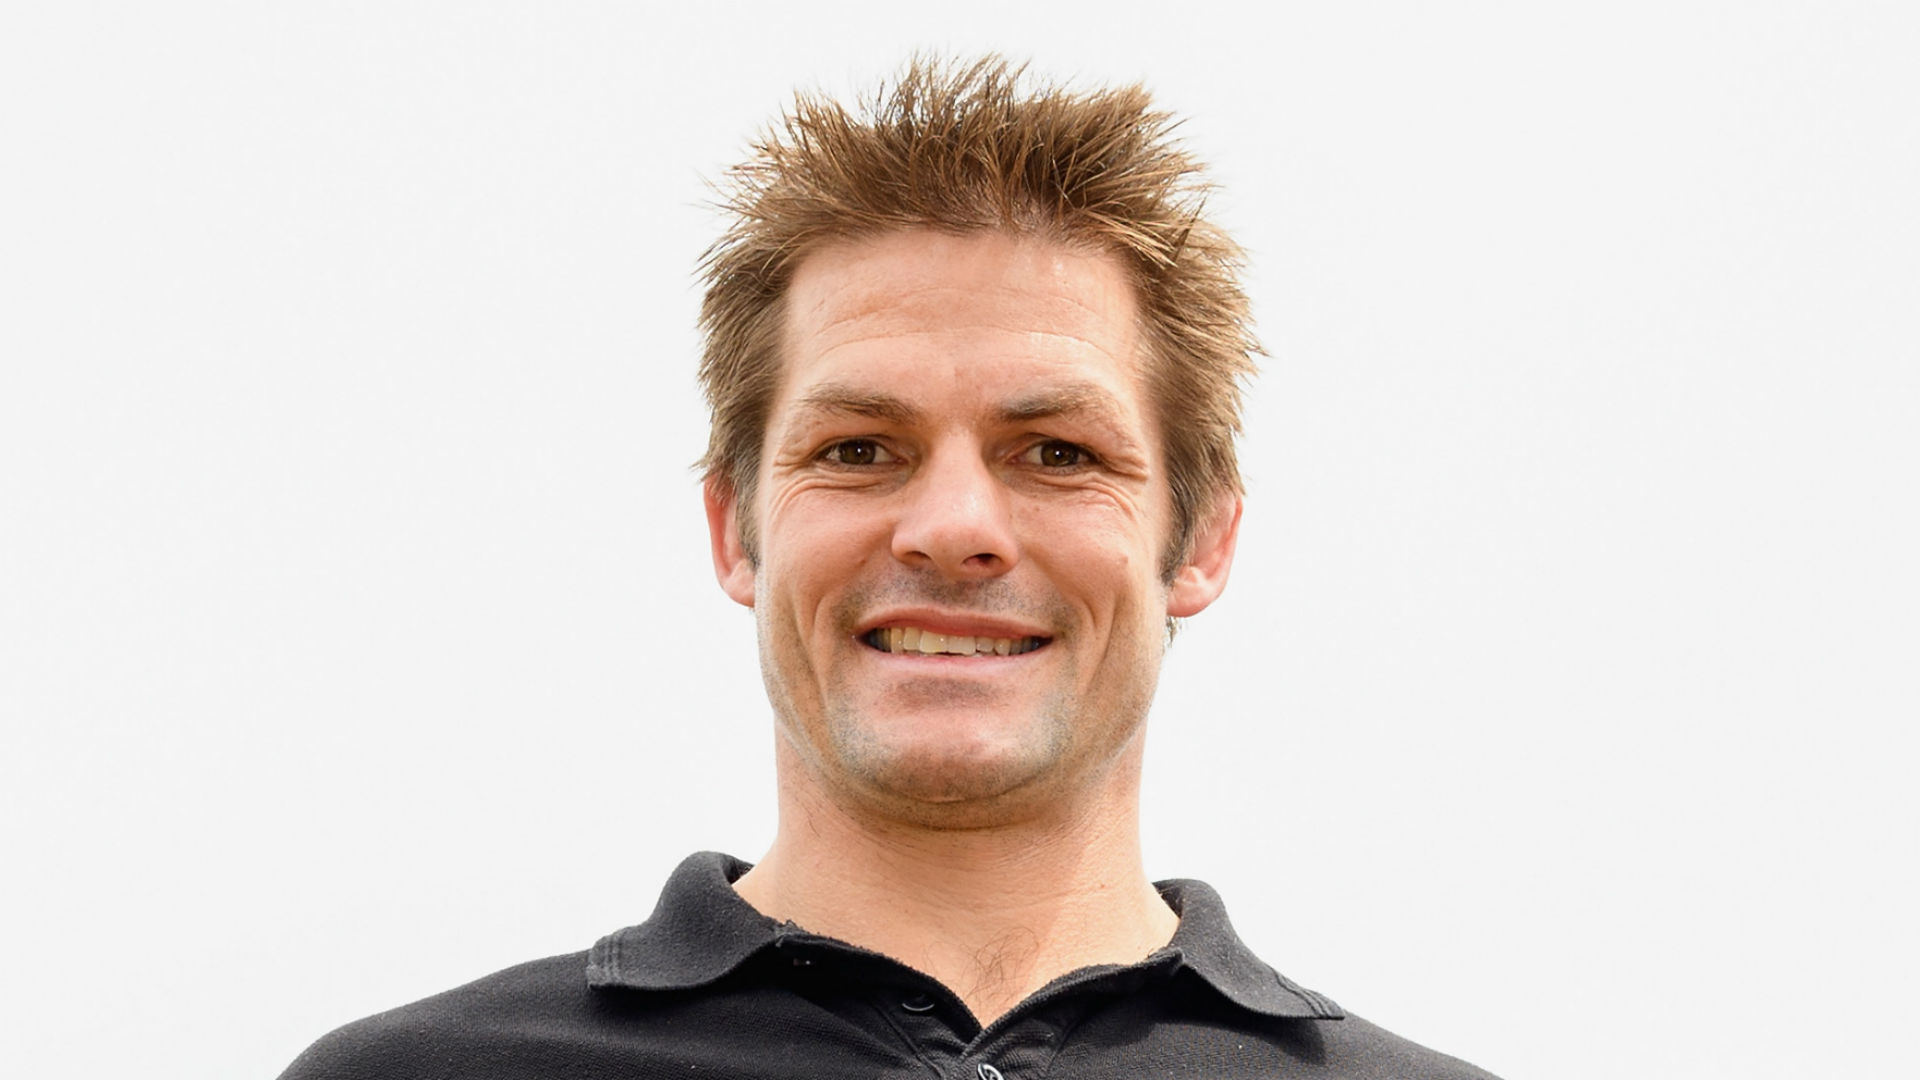 Crusaders Icon Richie Mccaw Offered Scott Robertson Advice Ahead Of